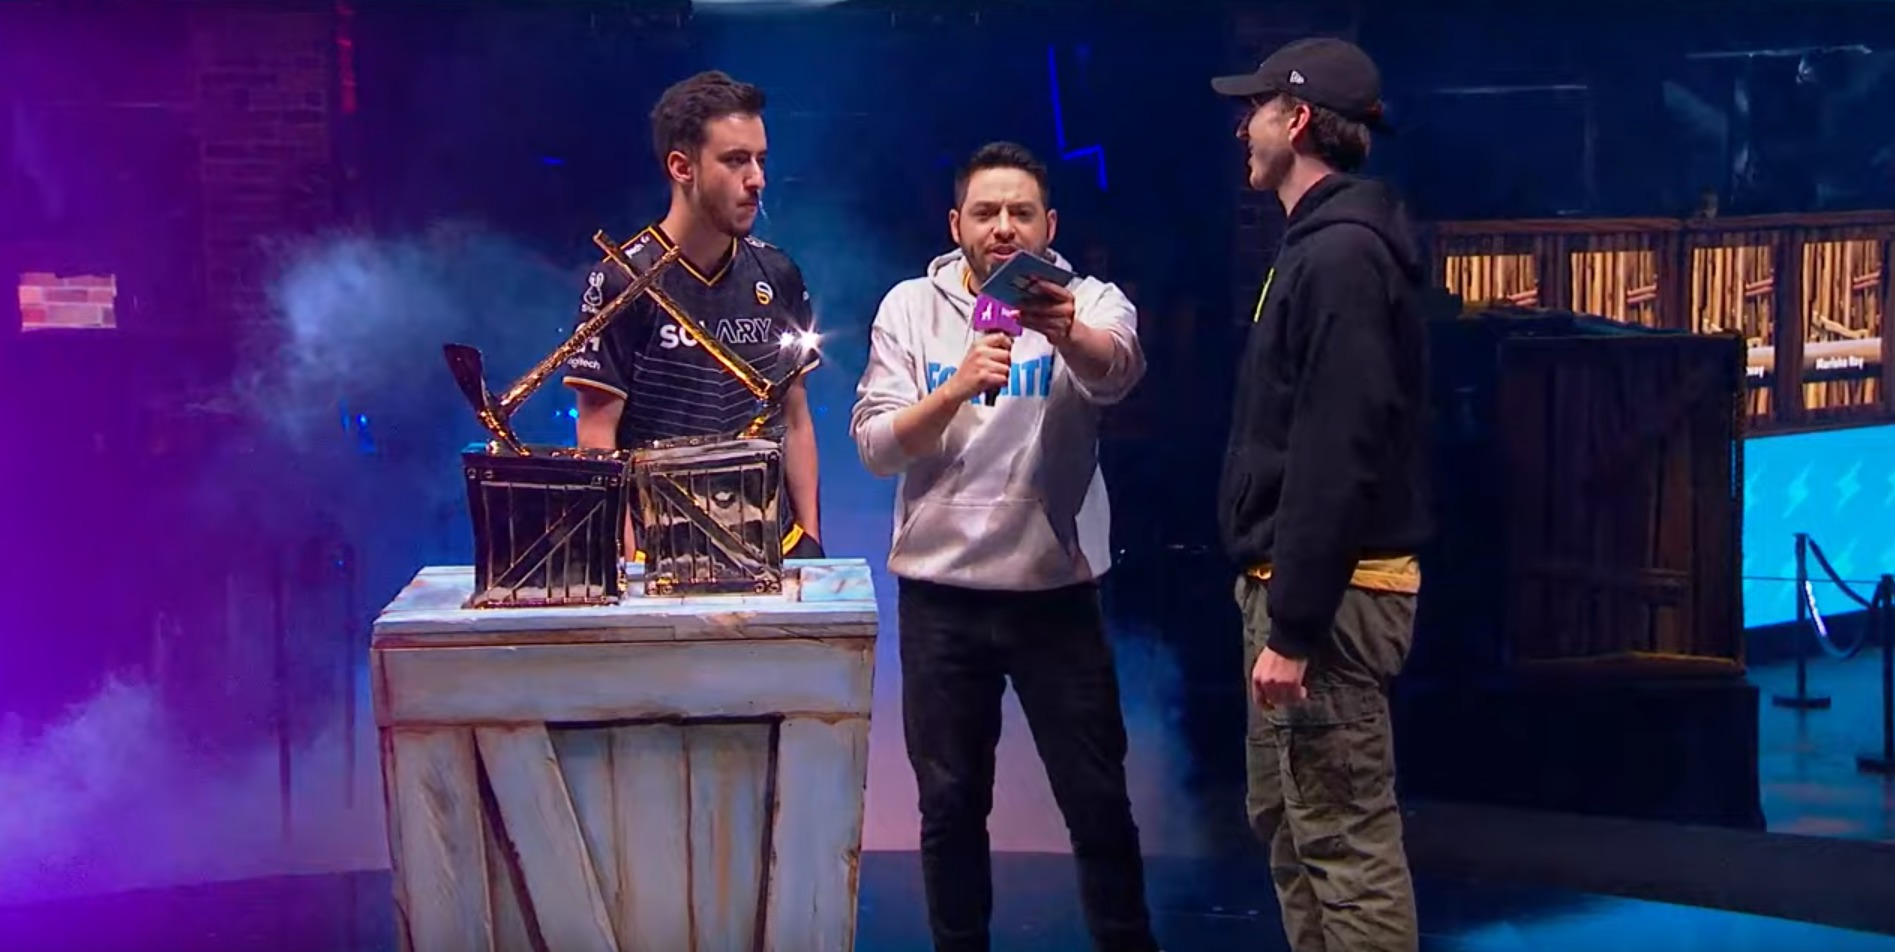 Streamer Airwaks and musician RL Grime win second annual Fortnite Celebrity Pro-Am